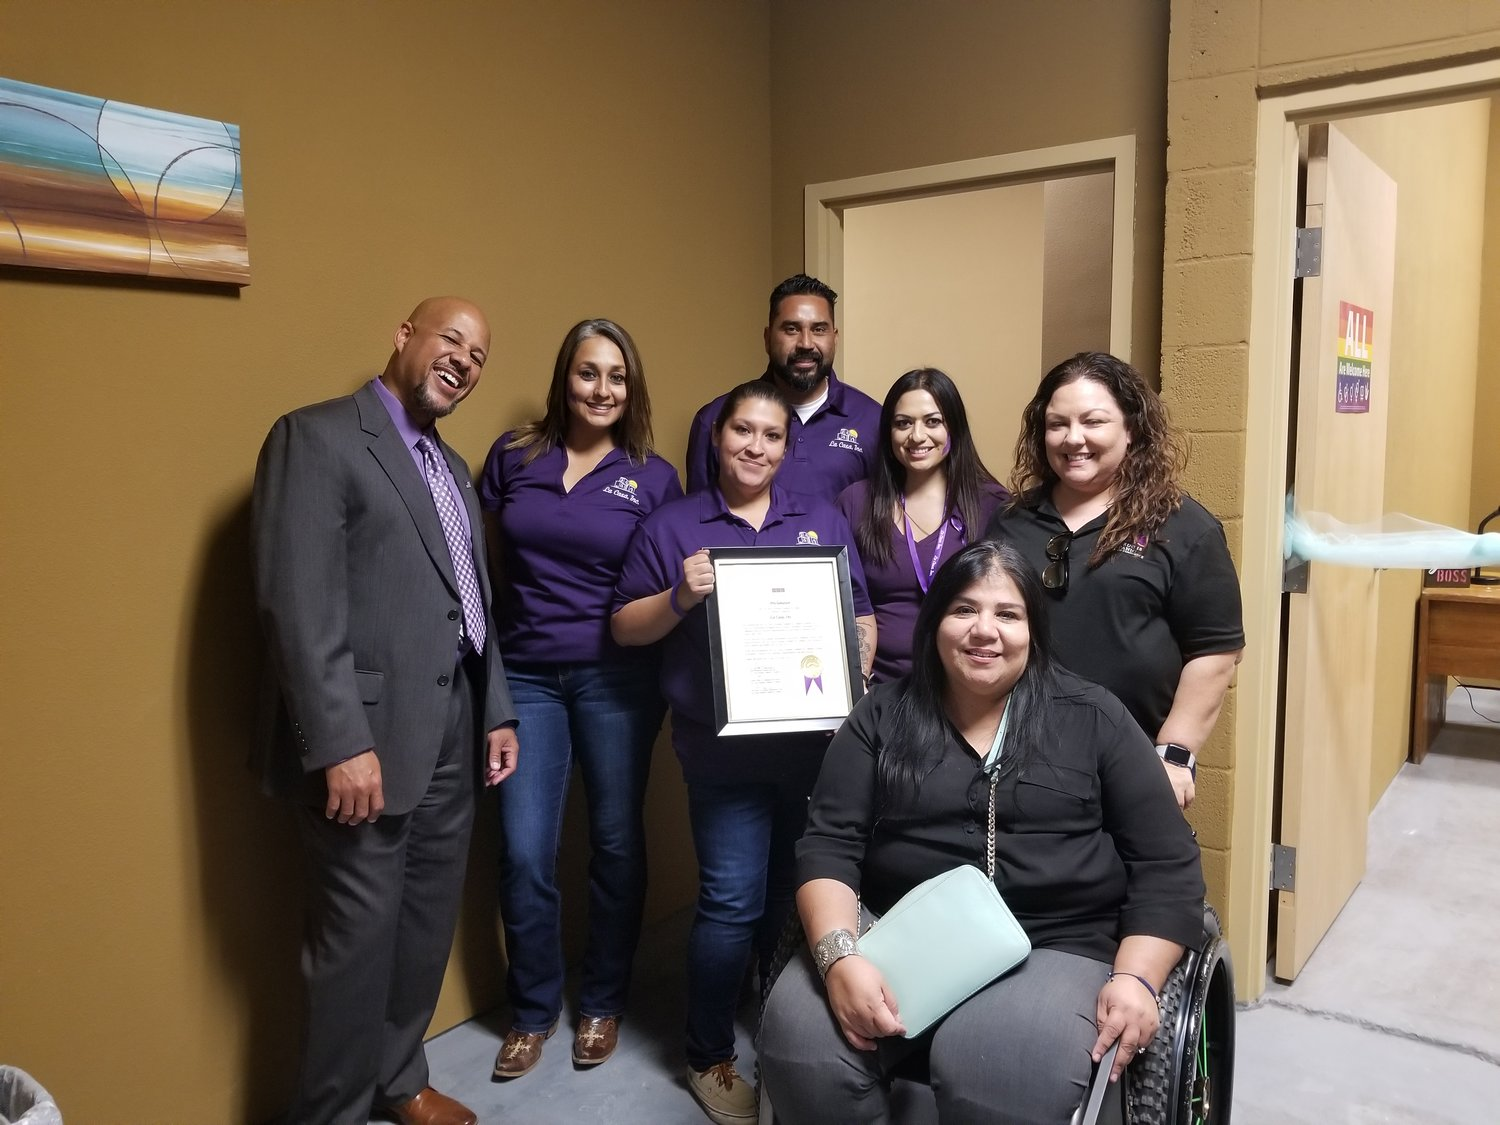 La Casa's Anthony, New Mexico staff and board member Berna Tirre (standing, far right) with Anthony Mayor Diana Murillo Trujillo (seated at right). Standing from left are La Casa Executive Director Henry Brutus, Case Manager Ceci Pinales, South Valley Program Coordinator Juliana Hernandez, Domestic Violence Advocate Jessica Solis and Rural Outreach Advocate Victor Soriano.